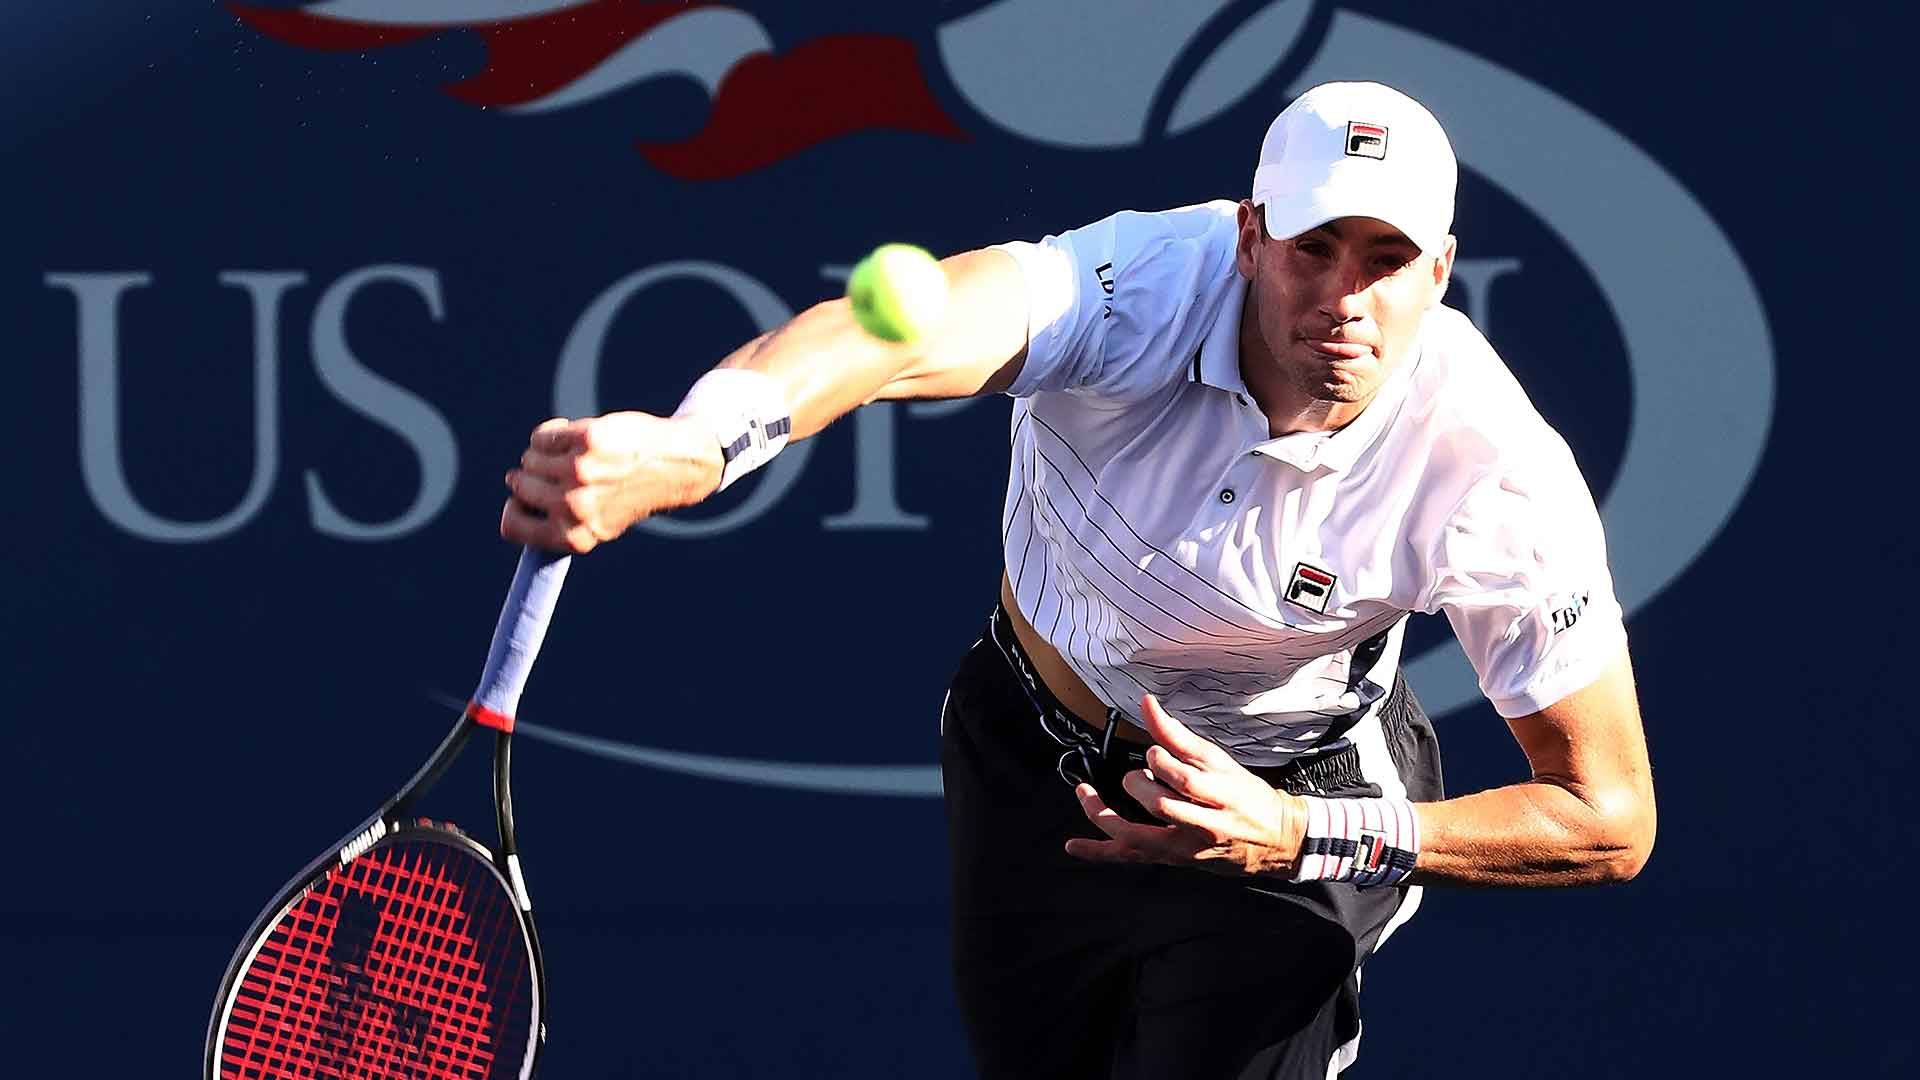 No. 20 seed John Isner rallies from two sets down in the first round against Frances Tiafoe.